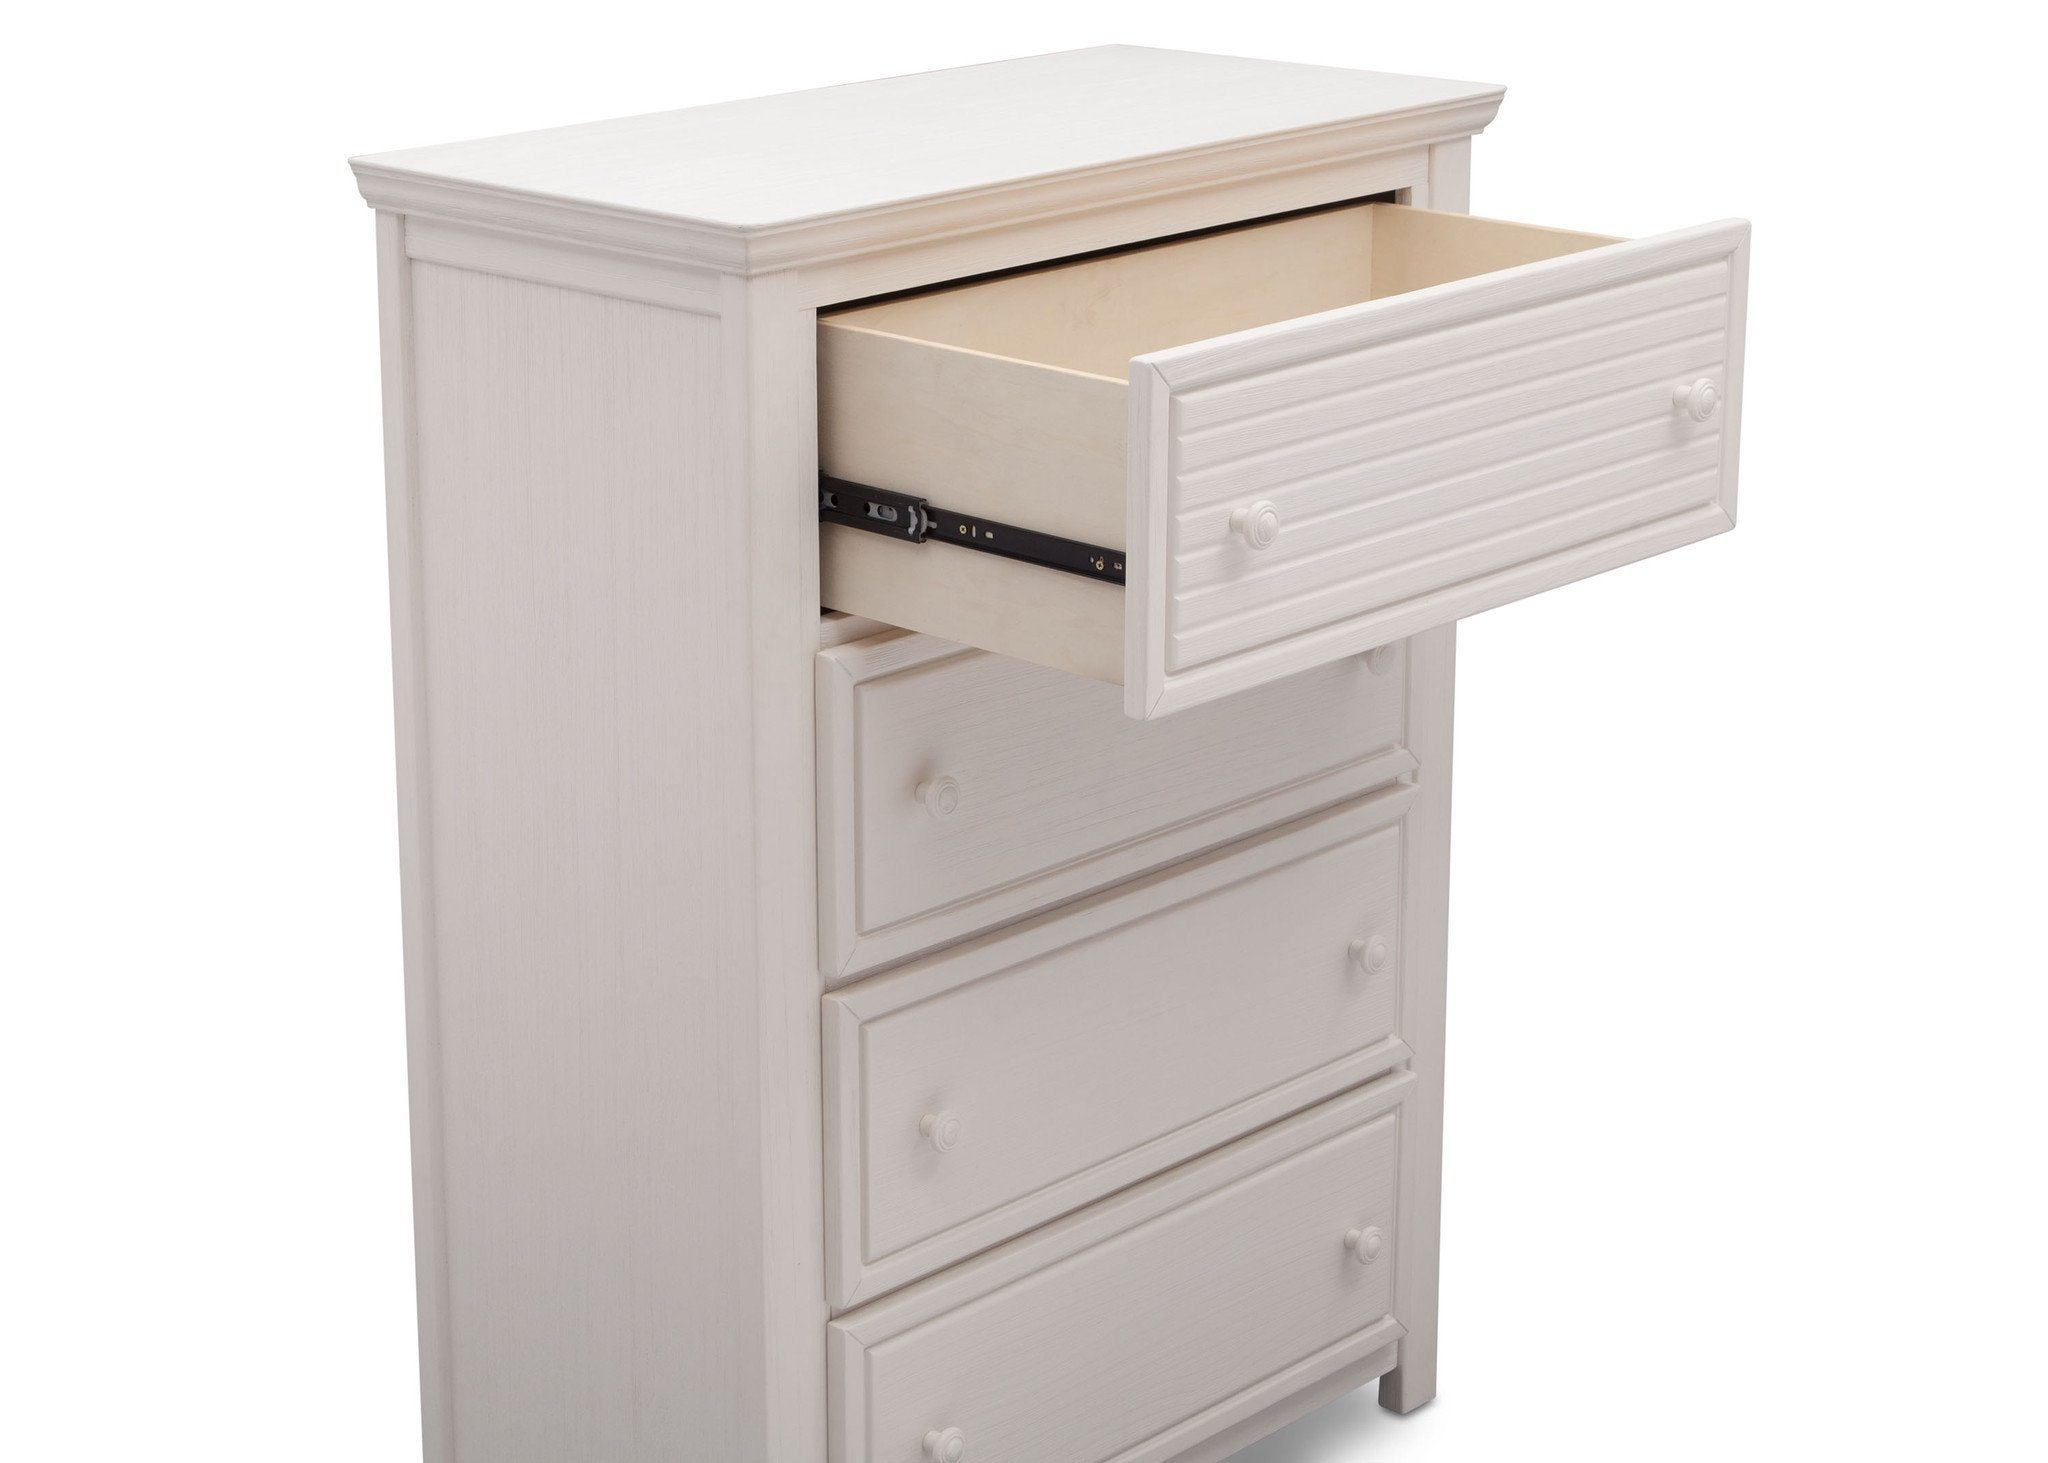 Simmons Kids Rustic Bianca (170) Oakmont 4 Drawer Chest Detail View a4a